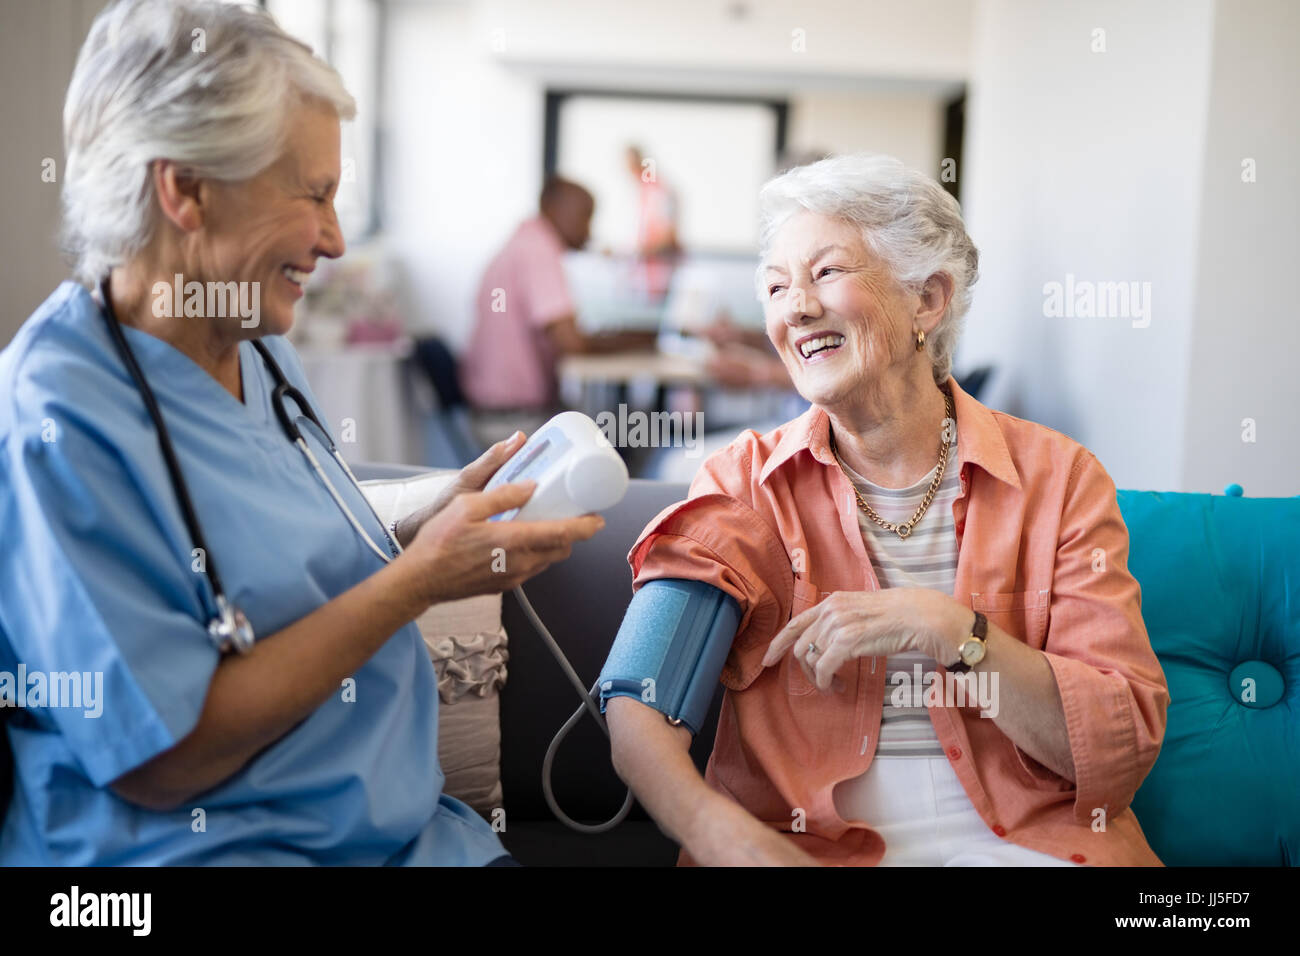 Smiling senior woman talking to female doctor during blood pressure check up at nursing home - Stock Image